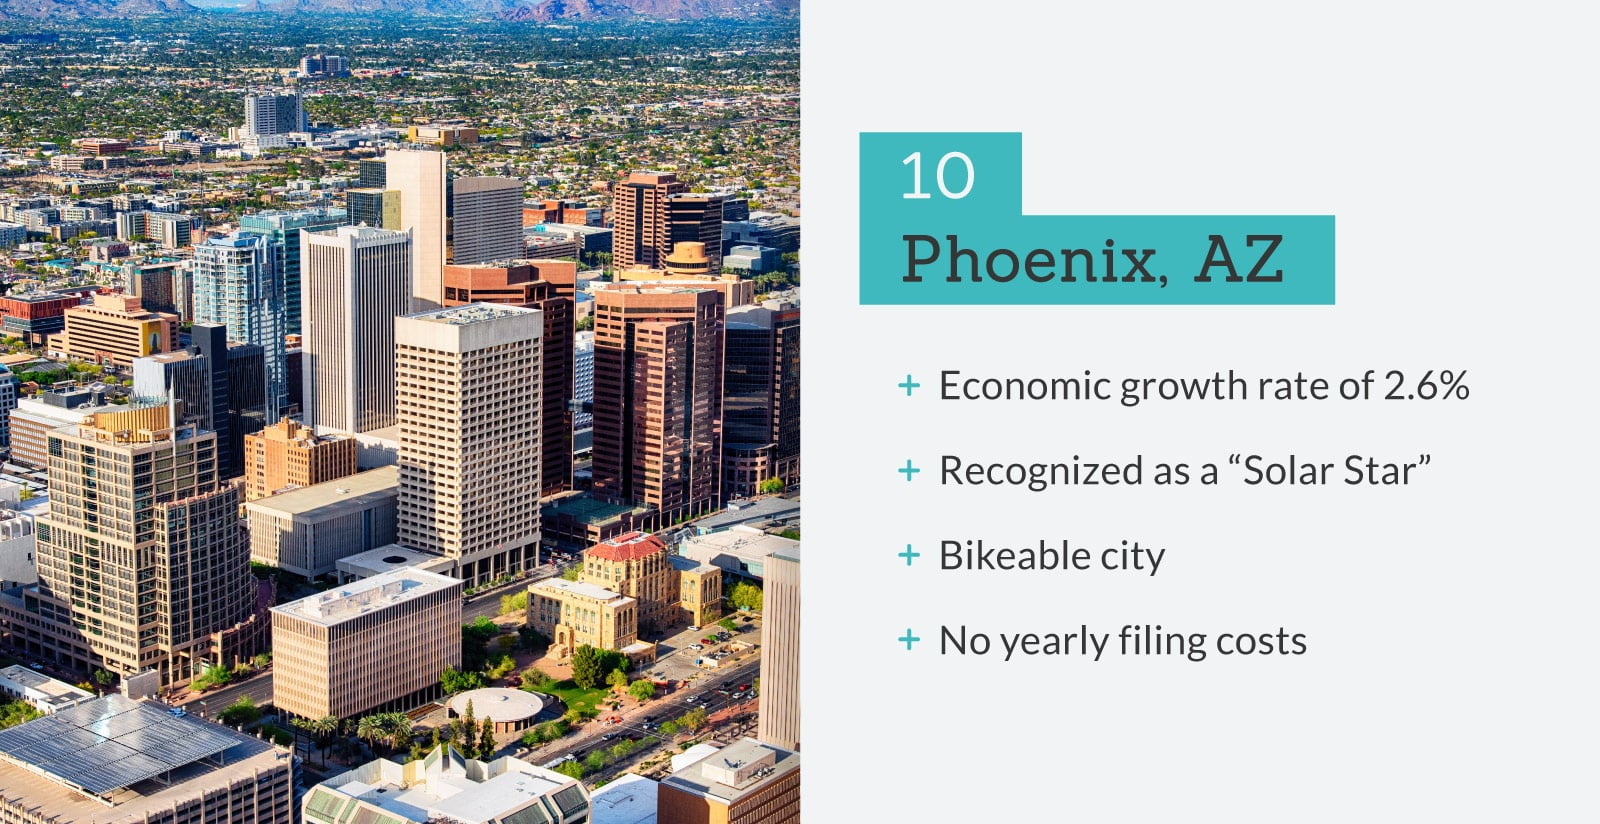 picture of Phoenix, AZ with stats.